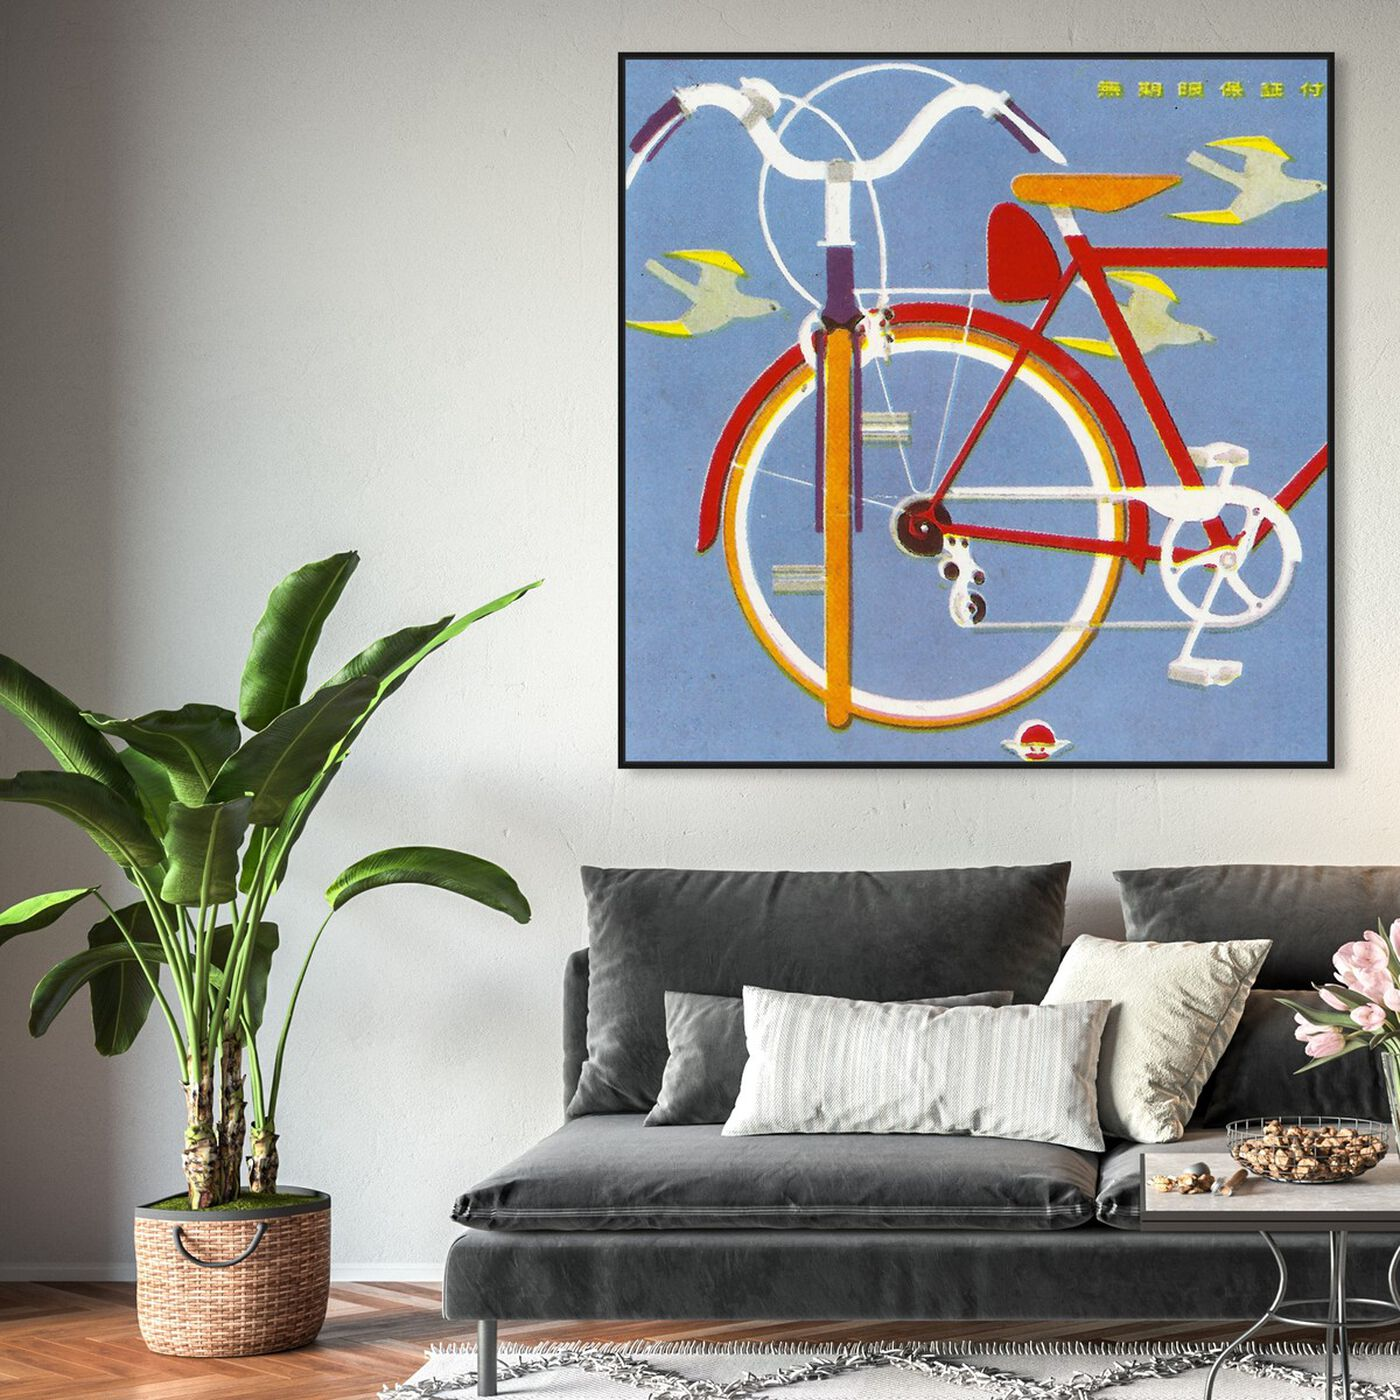 Hanging view of Hidori Bicycle featuring transportation and bicycles art.